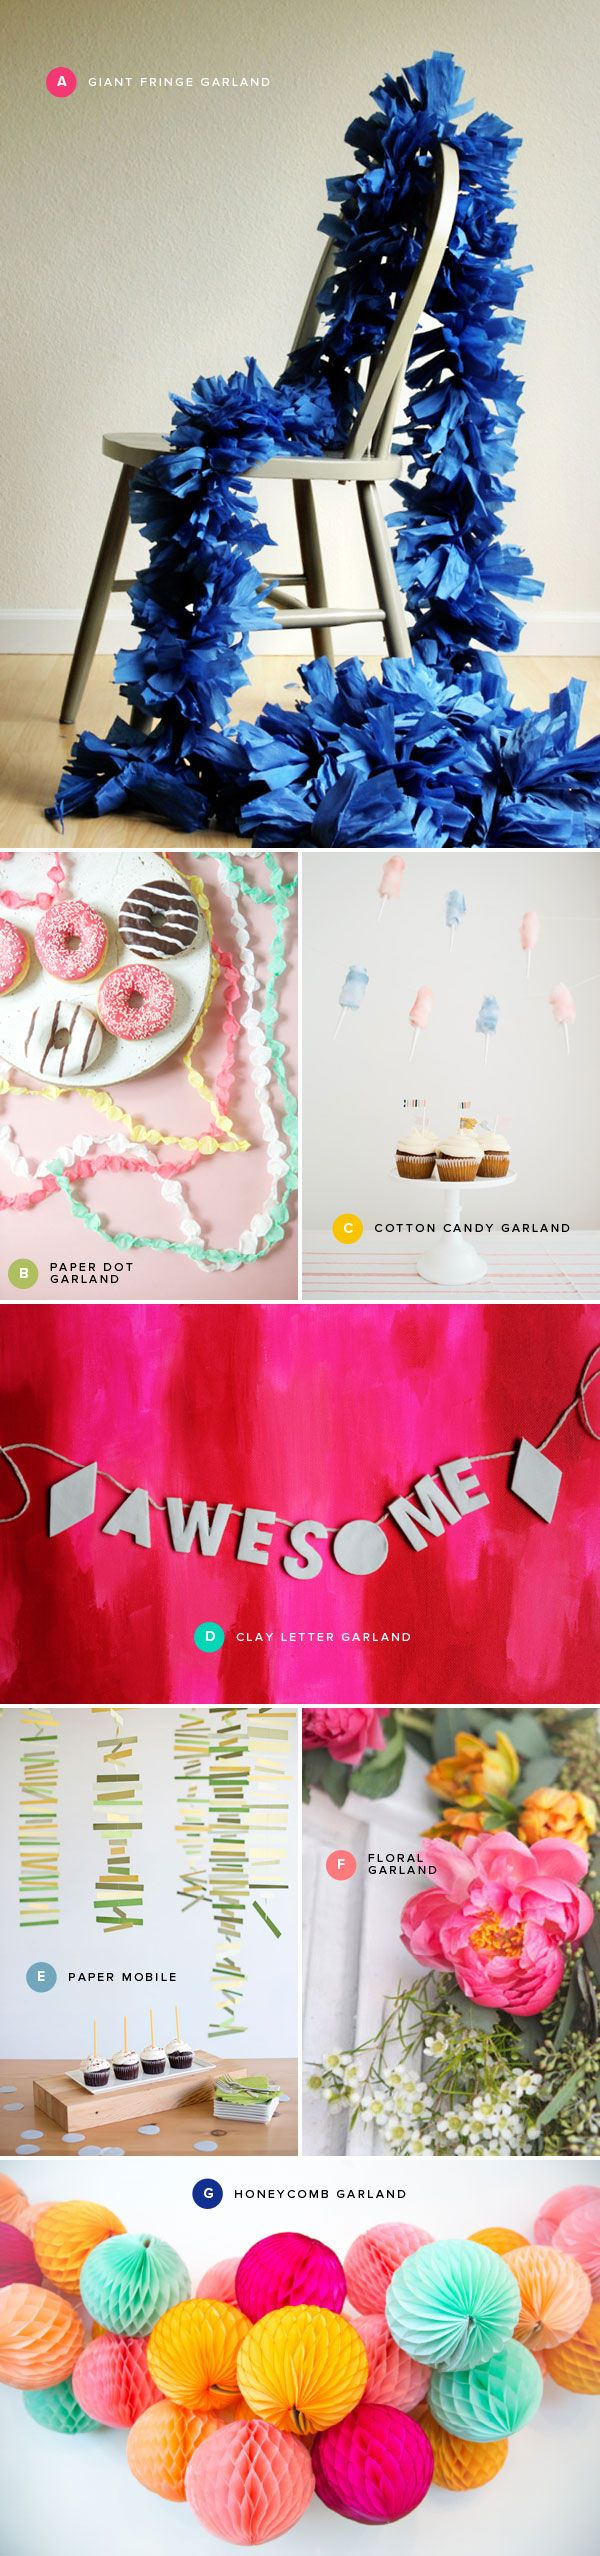 Festive Garland Ideas | Oh Happy Day!